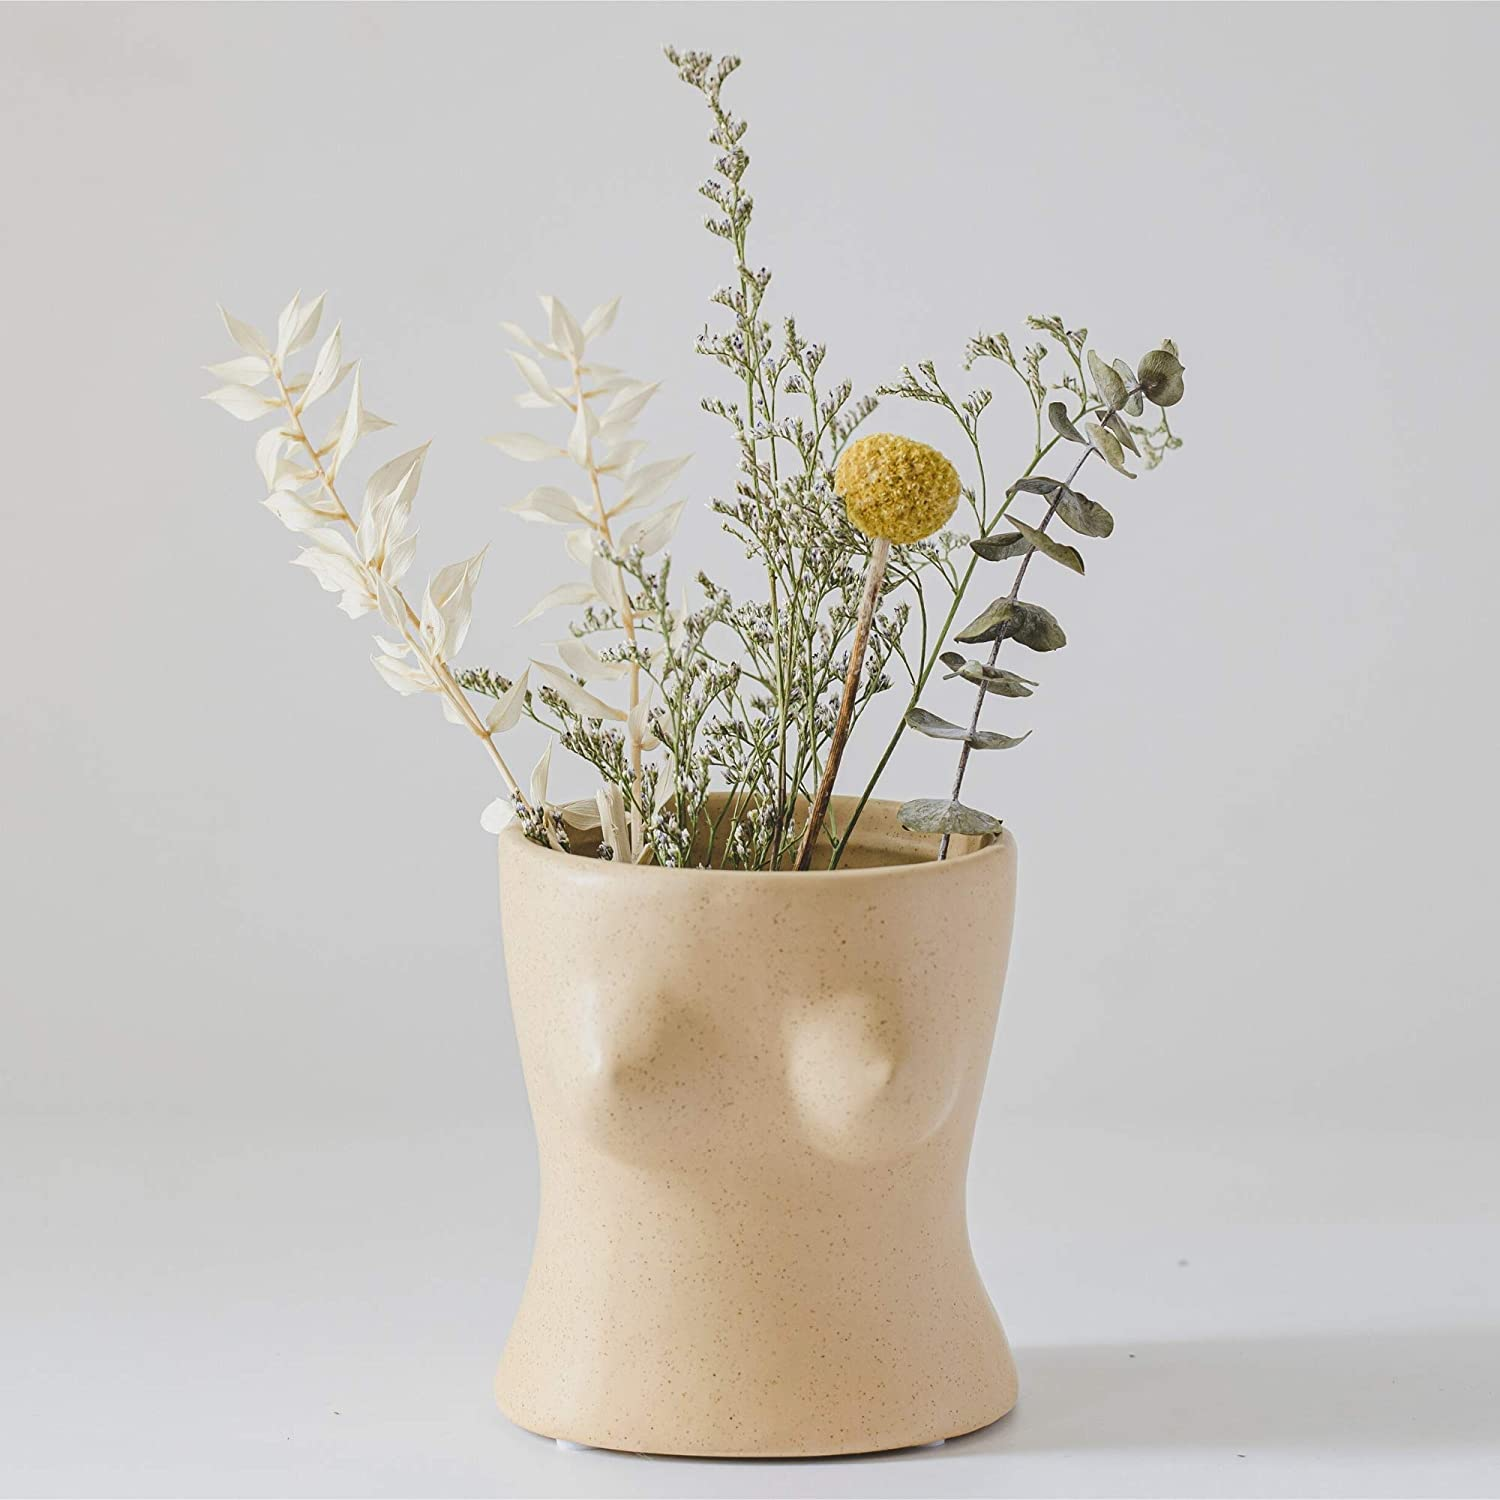 Female Form Body Flower Vase, Ceramic Vases for Modern Boho Home Decor, Lady Top Bust Boob Vase, Indoor Planter Plant Pot, Feminist Decors Cute Chic Small Accent Pieces